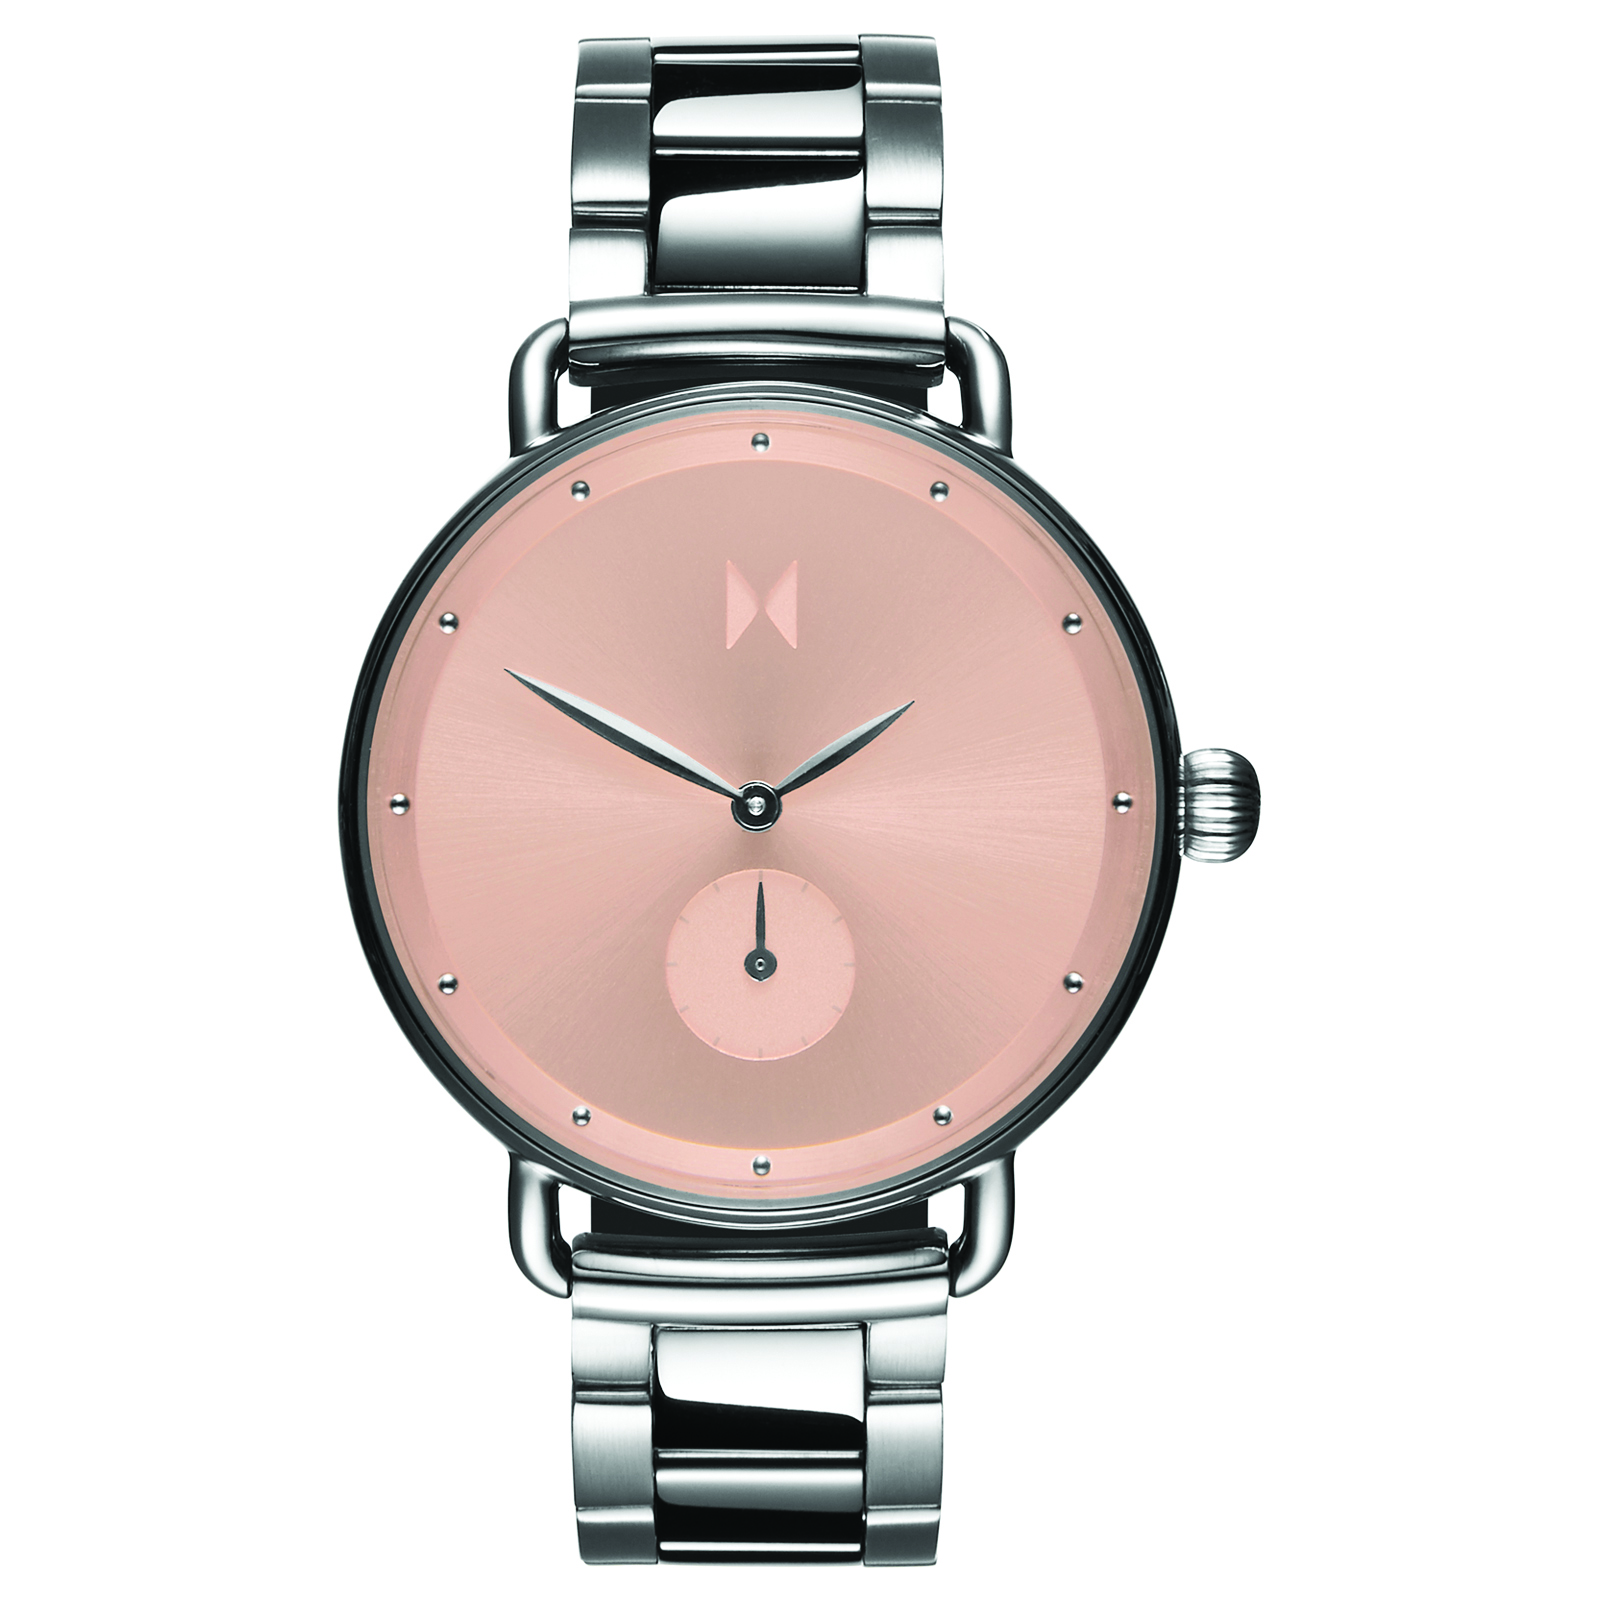 MVMT D-FR01-S RVS Zilverkleurig Bloom Horloge 36mm